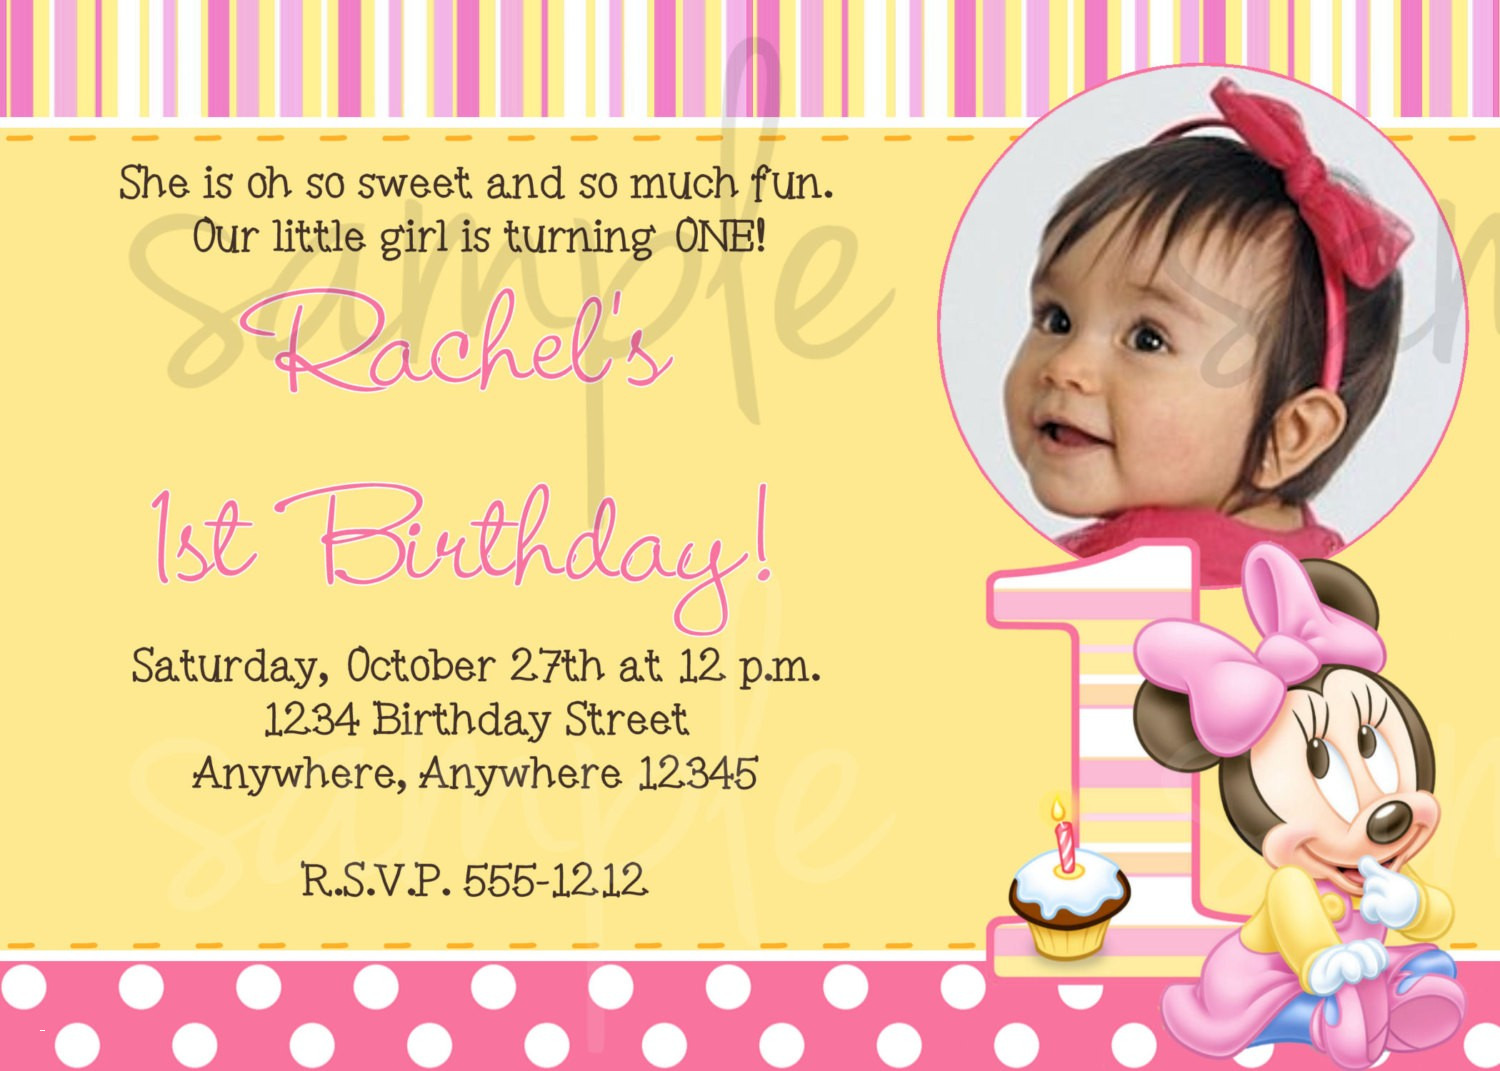 1st birthday invitation slogans ; boy-first-birthday-invitation-templates-best-of-birthday-invitation-quotes-unique-surprise-40th-birthday-party-of-boy-first-birthday-invitation-templates